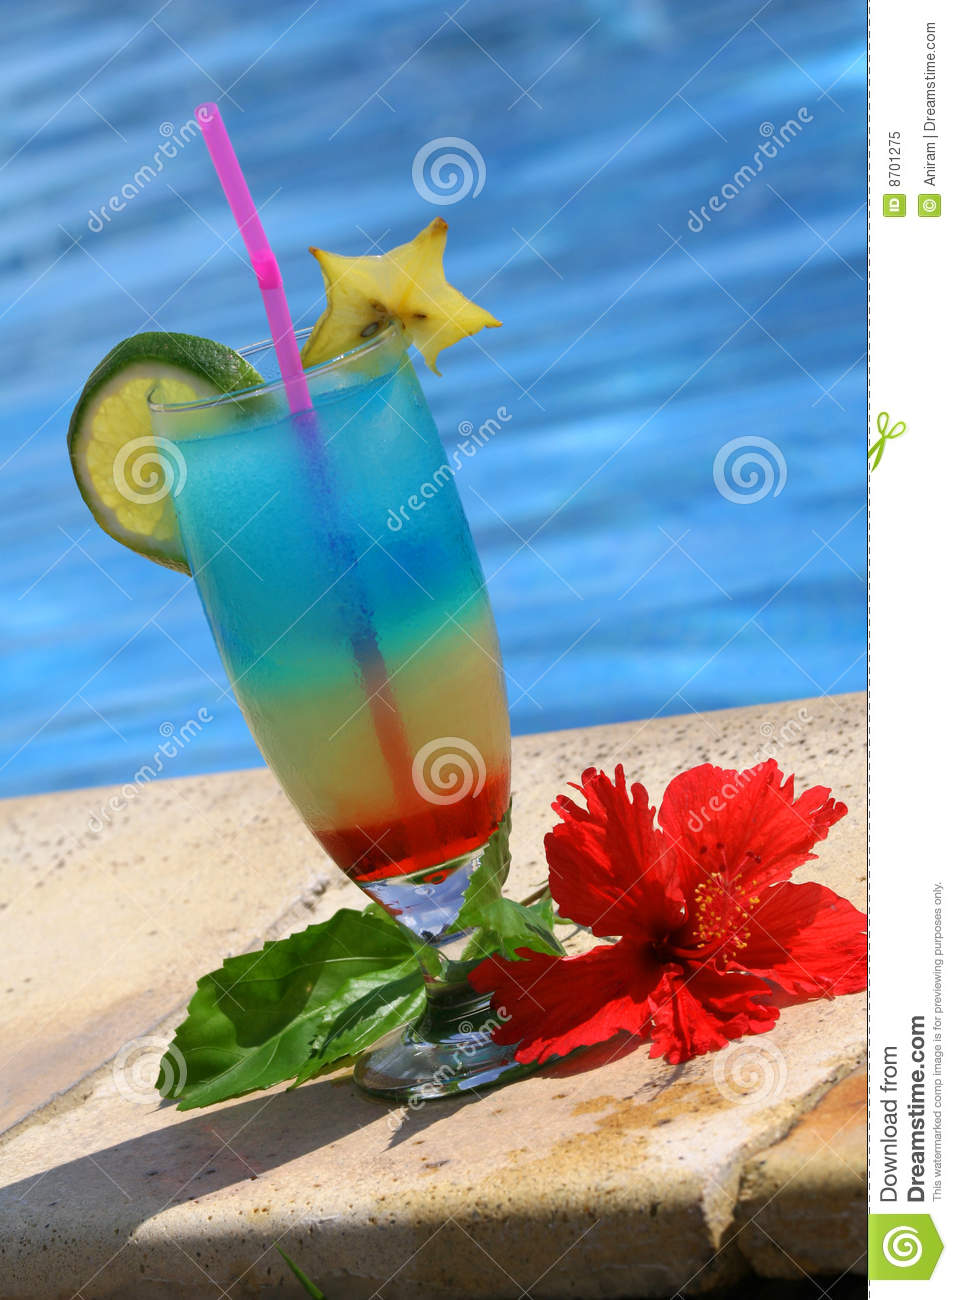 Cocktail by the swimming pool stock image image of liquor drink 8701275 How to make swimming pool water drinkable